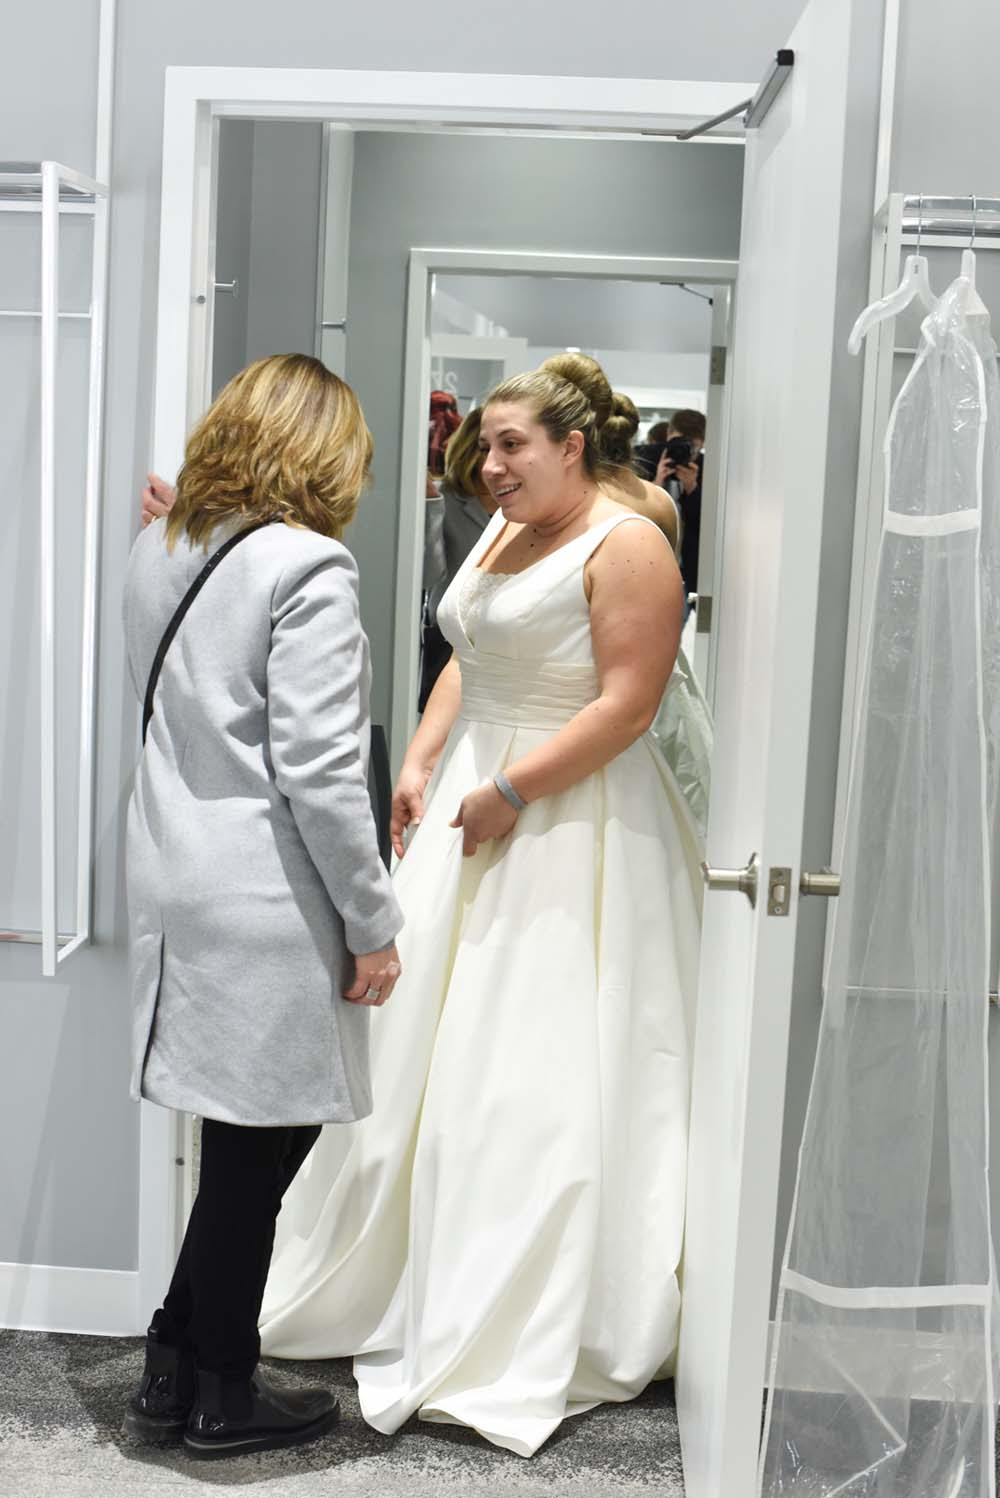 David S Bridal Has Opened A Gorgeous New Location In Vaughan